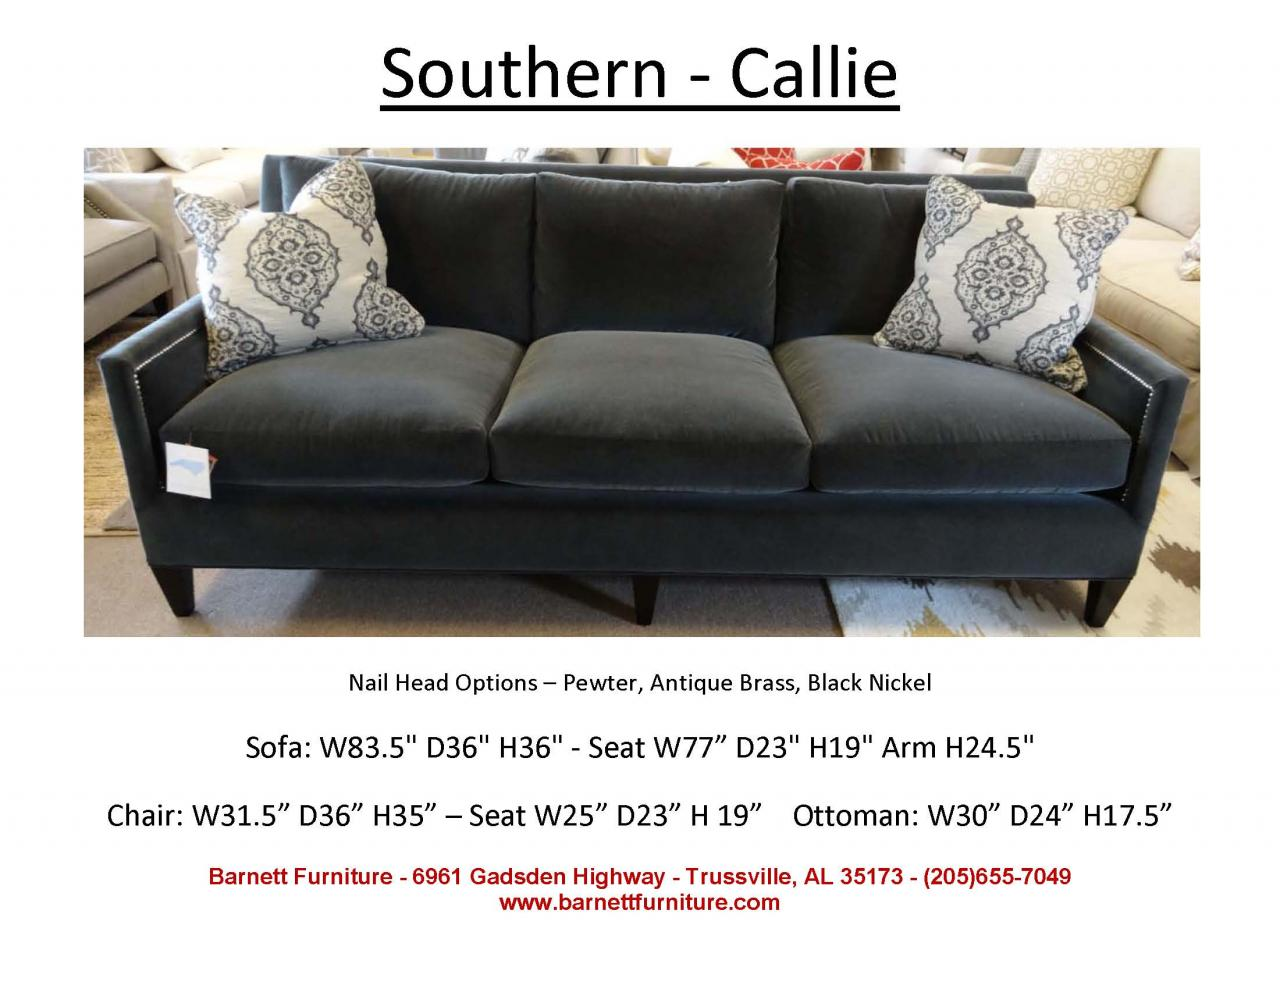 king hickory sofa winston queen size sleeper sofas southern furniture callie